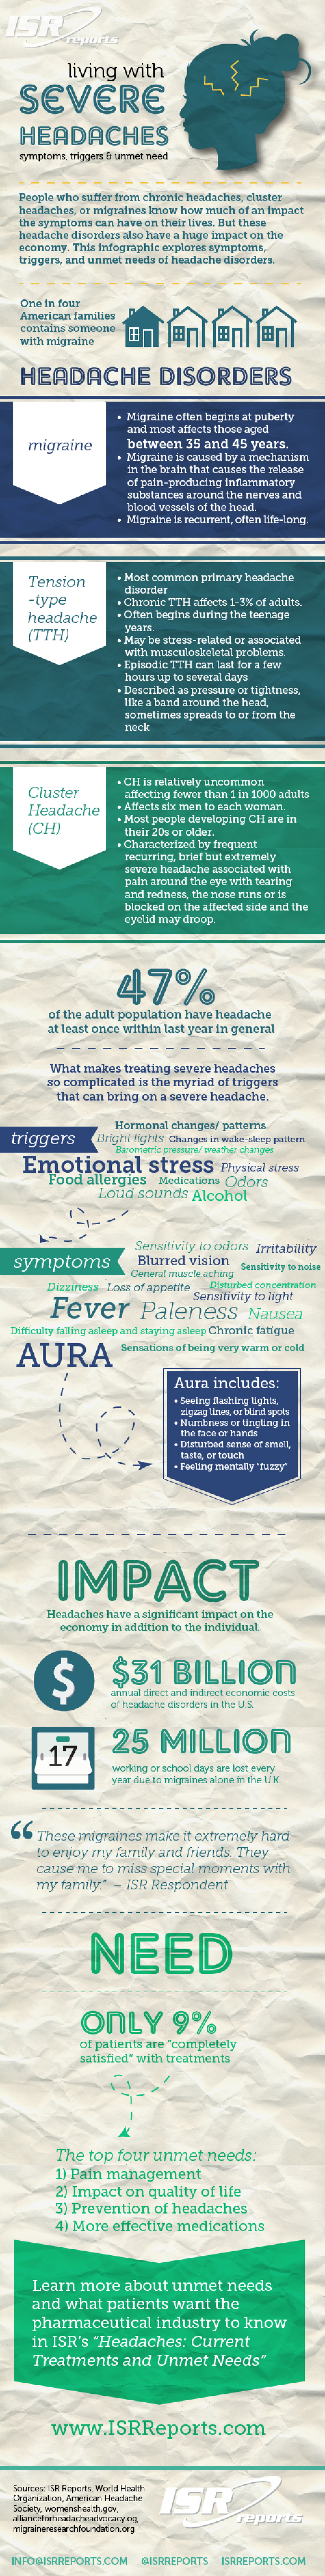 Living with Severe Headaches: Symptoms, Triggers, and Unmet Needs Infographic